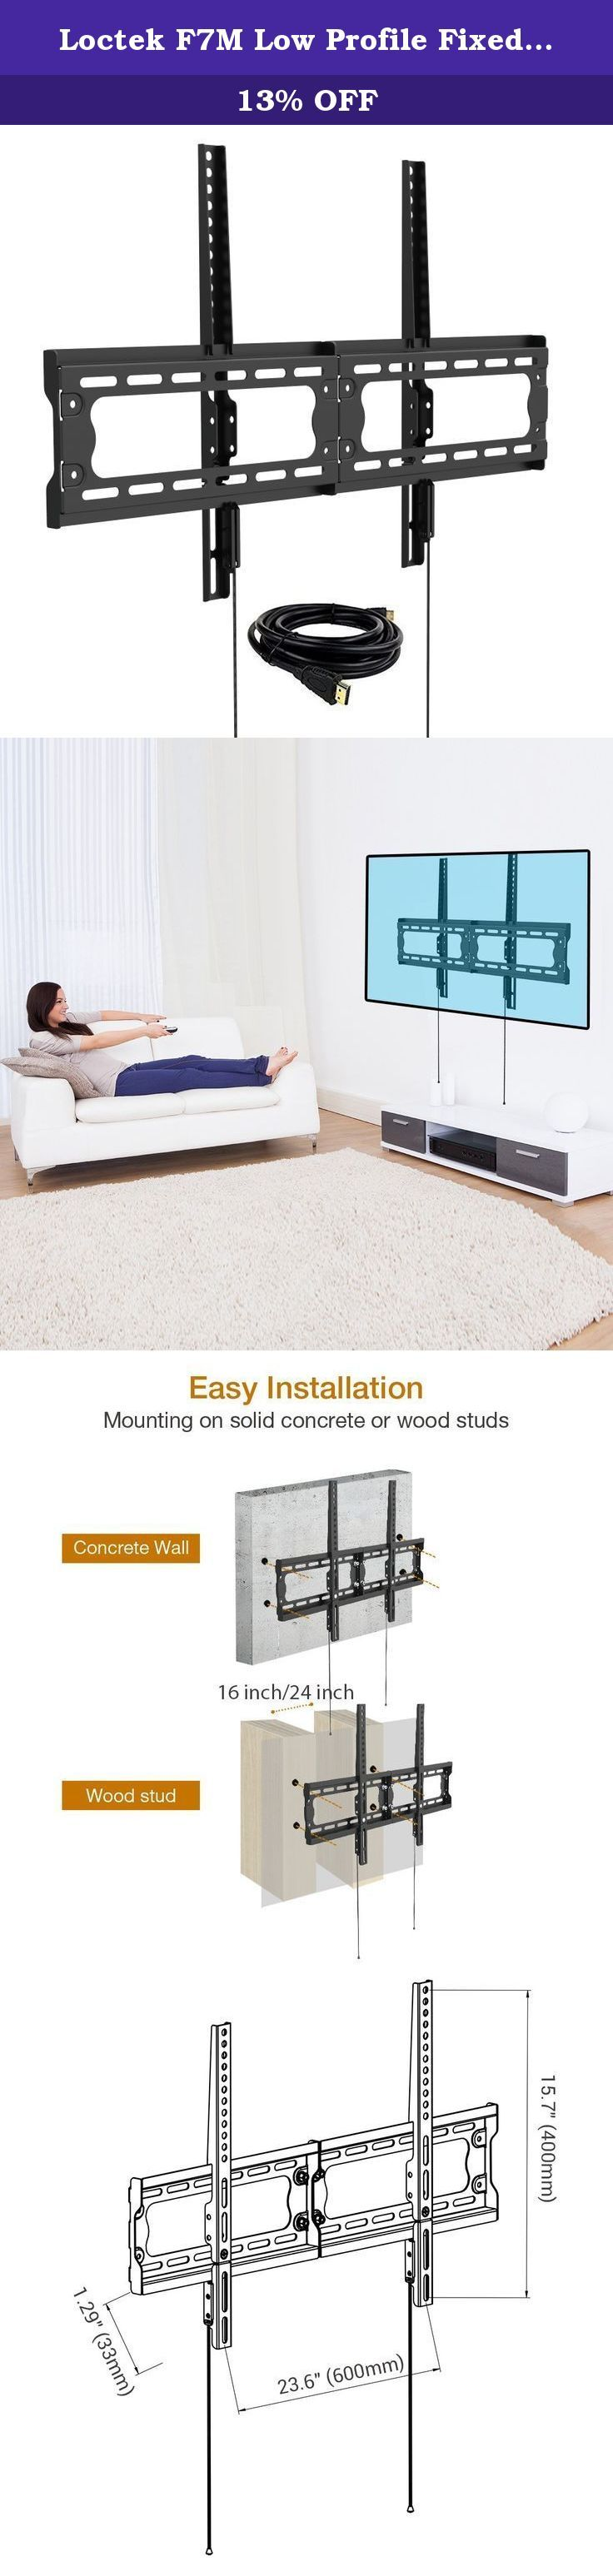 """Loctek F7M Low Profile Fixed TV Wall Mount Bracket with VESA patterns up to 600 x 400 and max.165lbs loading capacity for 32-65 inch LCD LED Plasma TVs. Description: This Loctek super low profile fixed slim TV mount bracket attach nearly flush to the wall to maximize the sleek, thinness of LED TVs which make TVs like a picture hanging on the wall; this mount can hold a TV with flat screen between 32"""" and 65"""" with max 600*400 VESA compatibility and max.165lbs loading capacity. Features:..."""